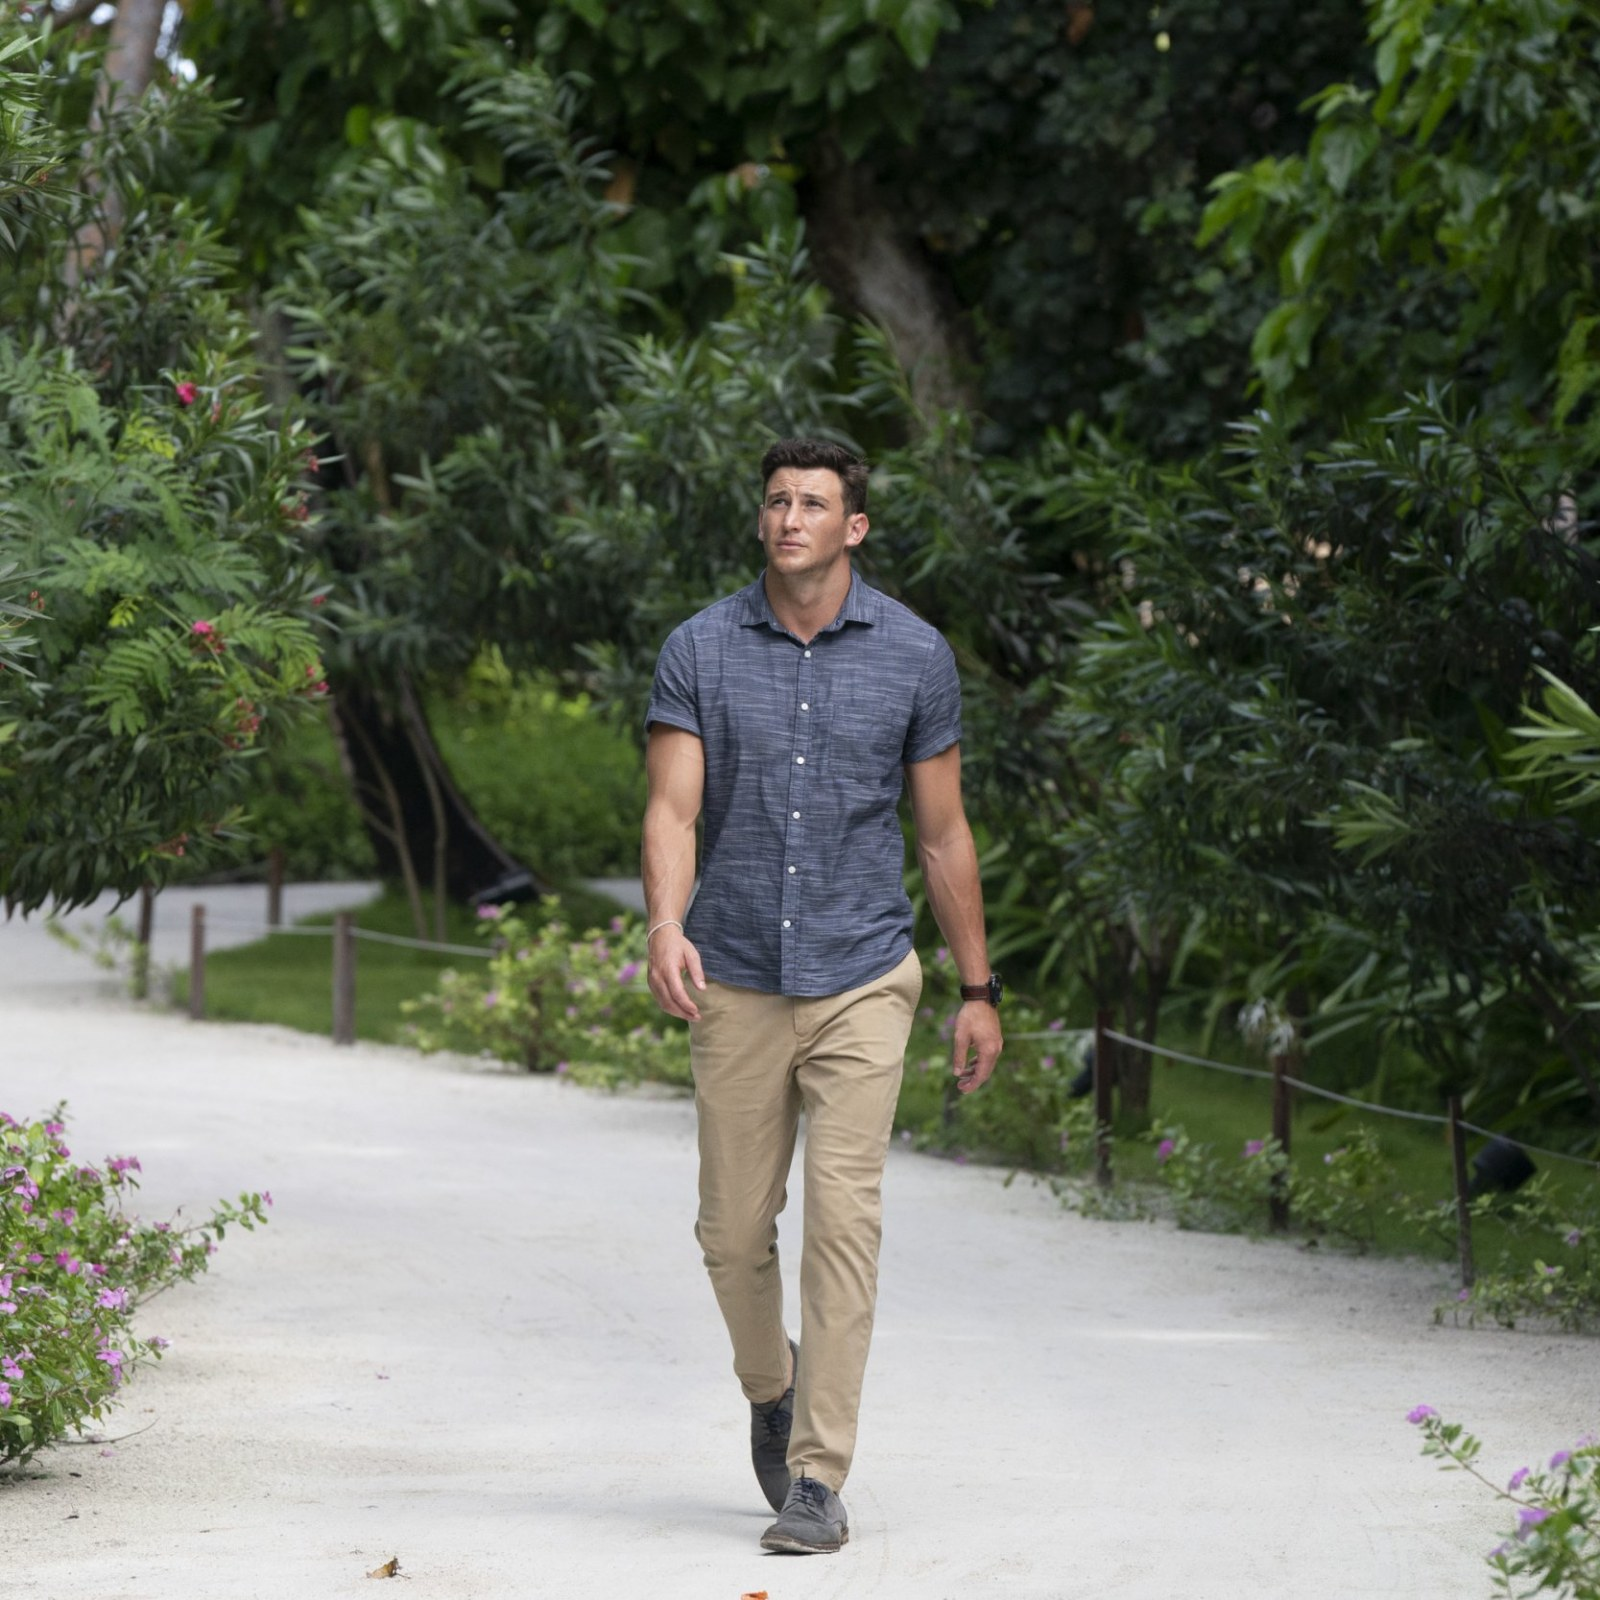 New Bachelor 2020.Who Is The Bachelor 2020 Possible Candidates From Bachelor